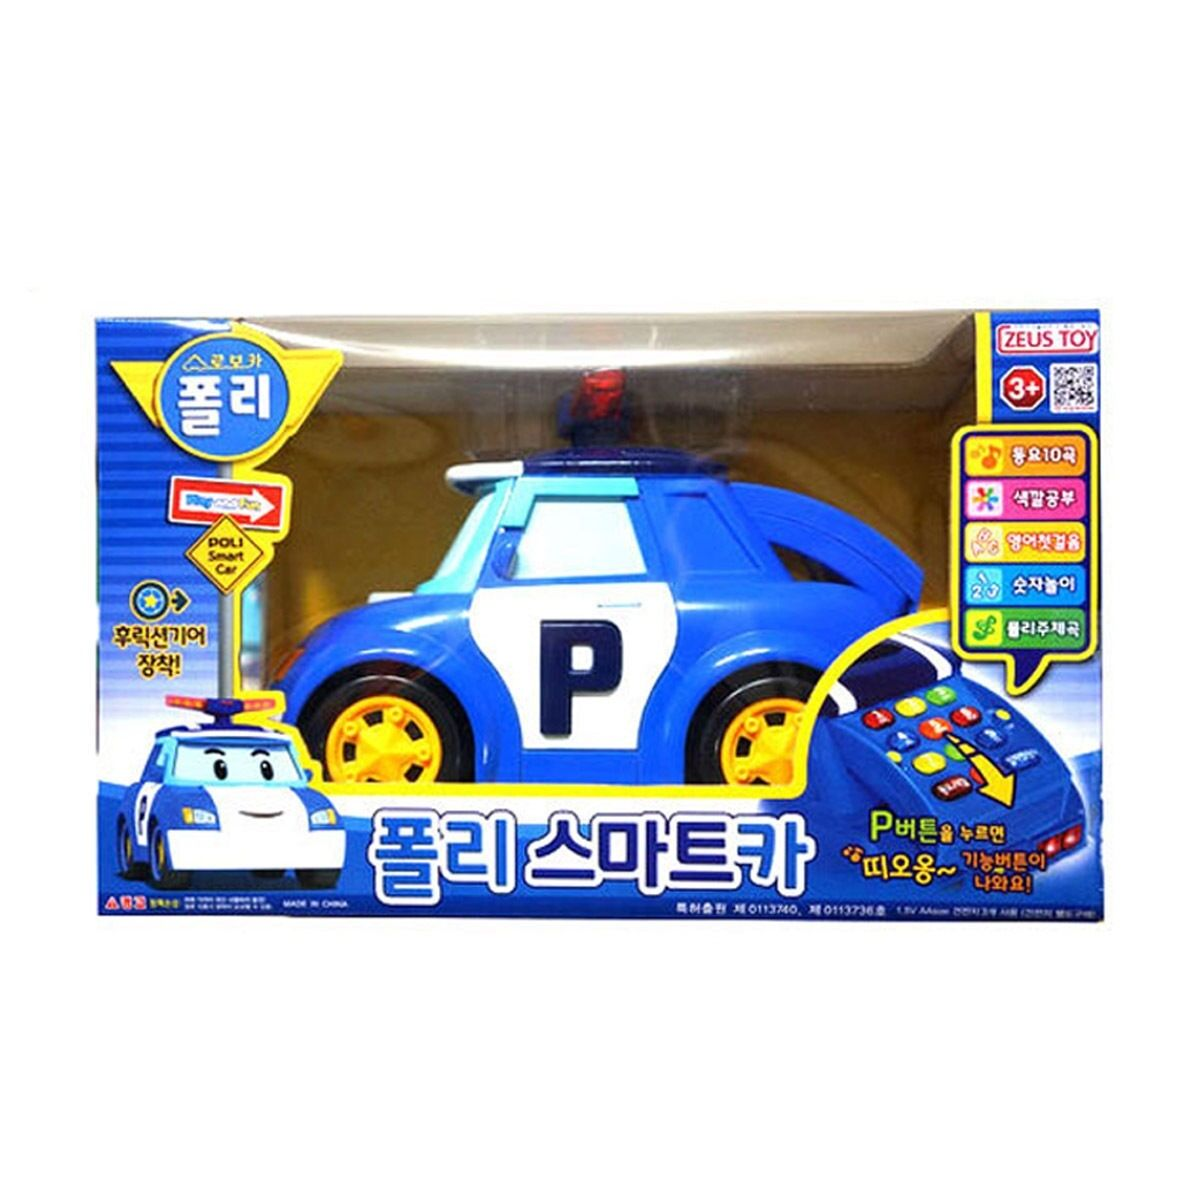 Robocar Poli Smart Car Educational Toy with Sound Friction Gear 10 Melody songs